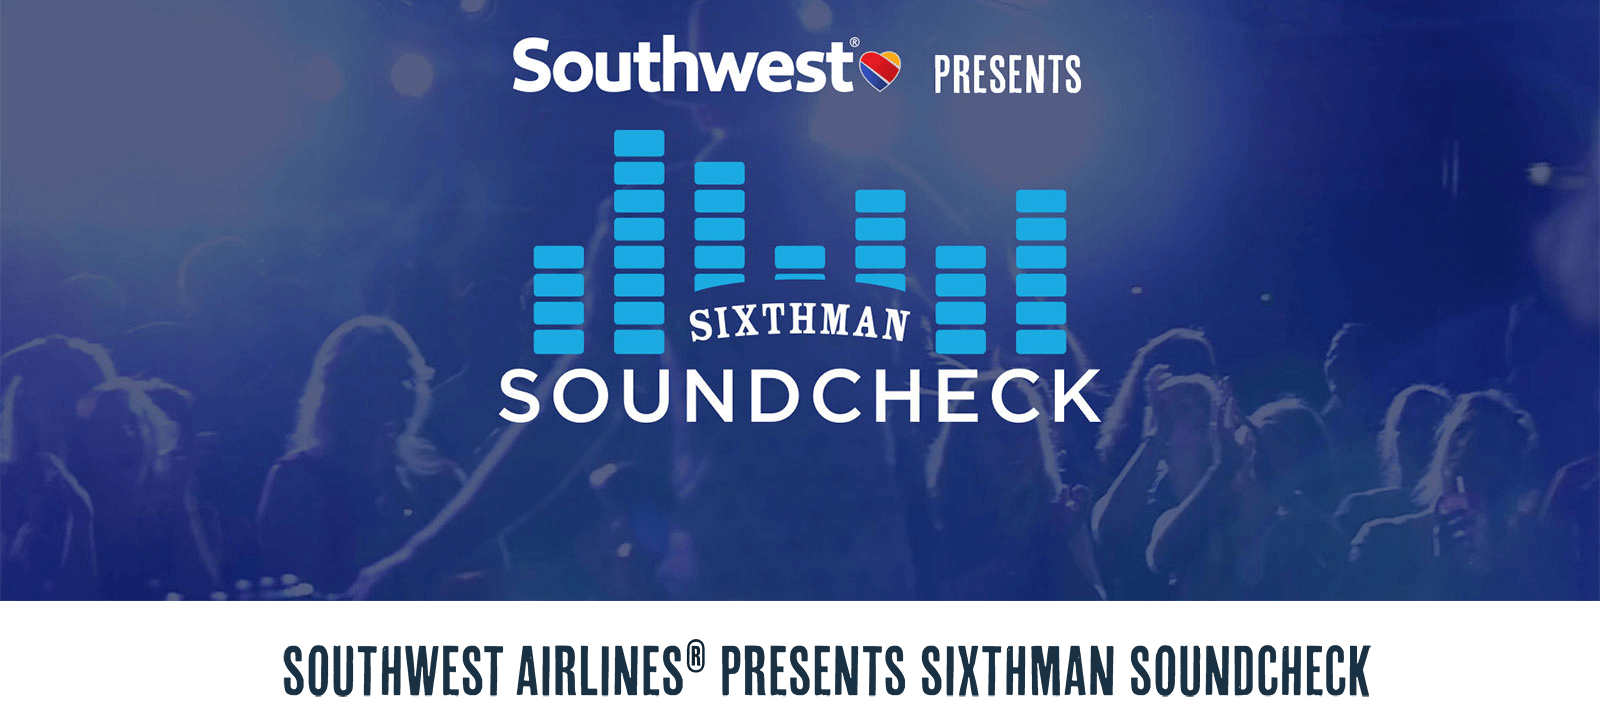 Southwest Airlines Presents Sixthman Soundcheck